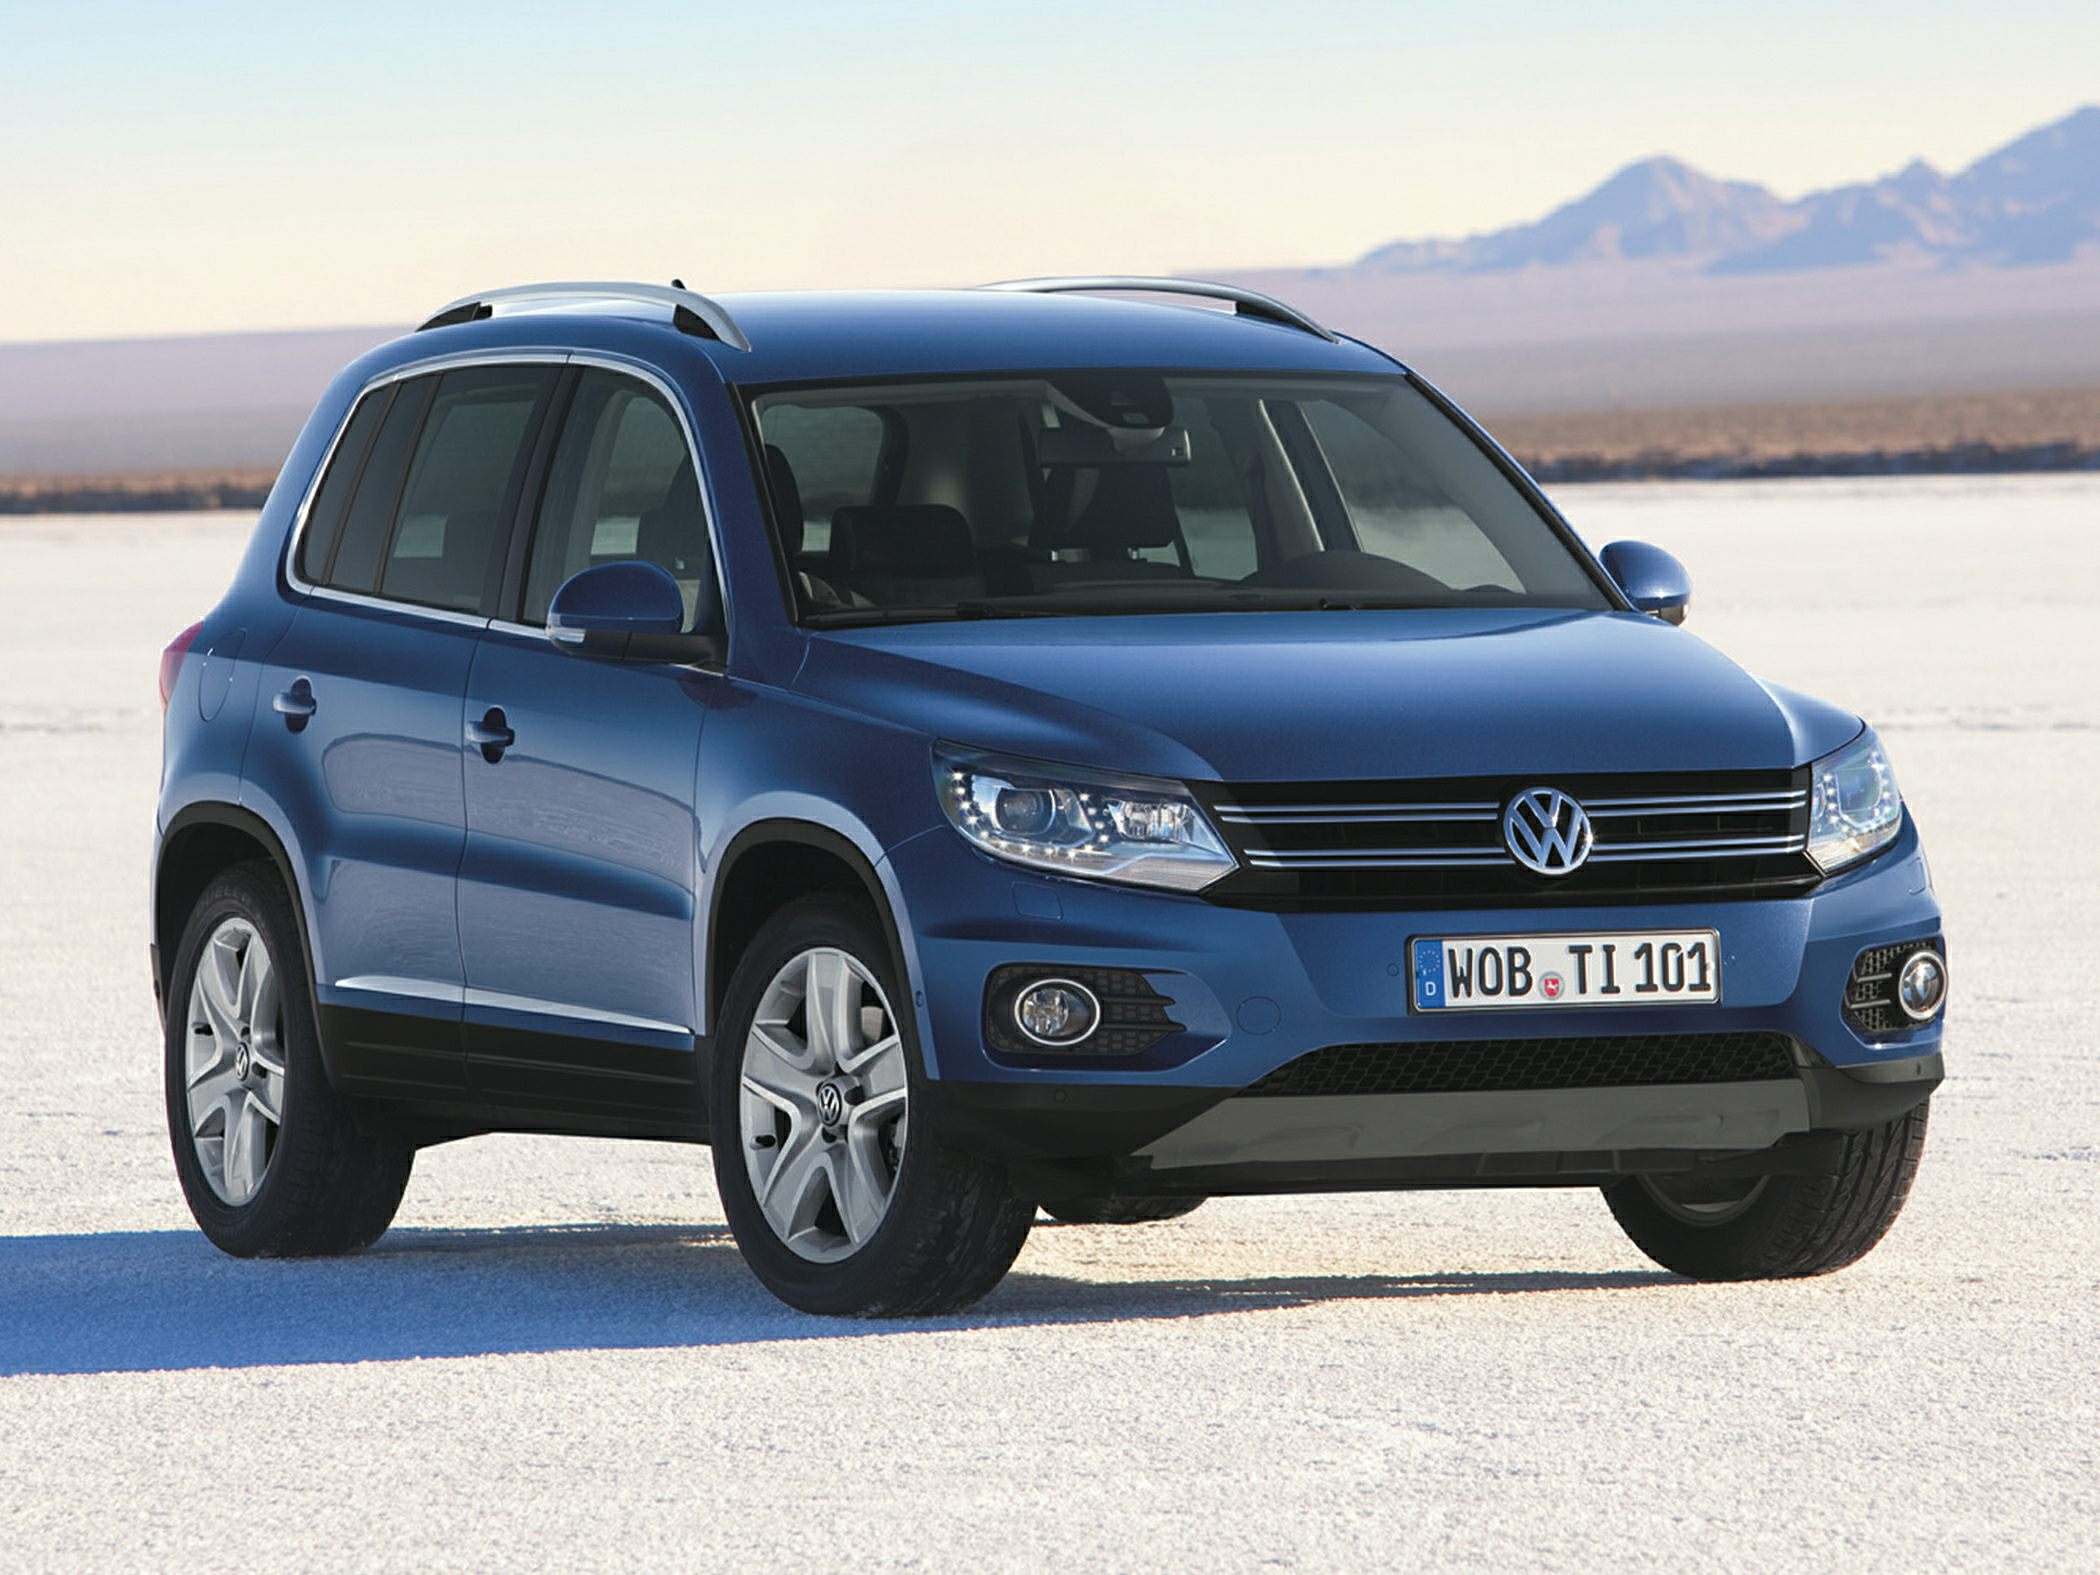 volkswagen tiguan neuve au maroc acheter volkswagen. Black Bedroom Furniture Sets. Home Design Ideas